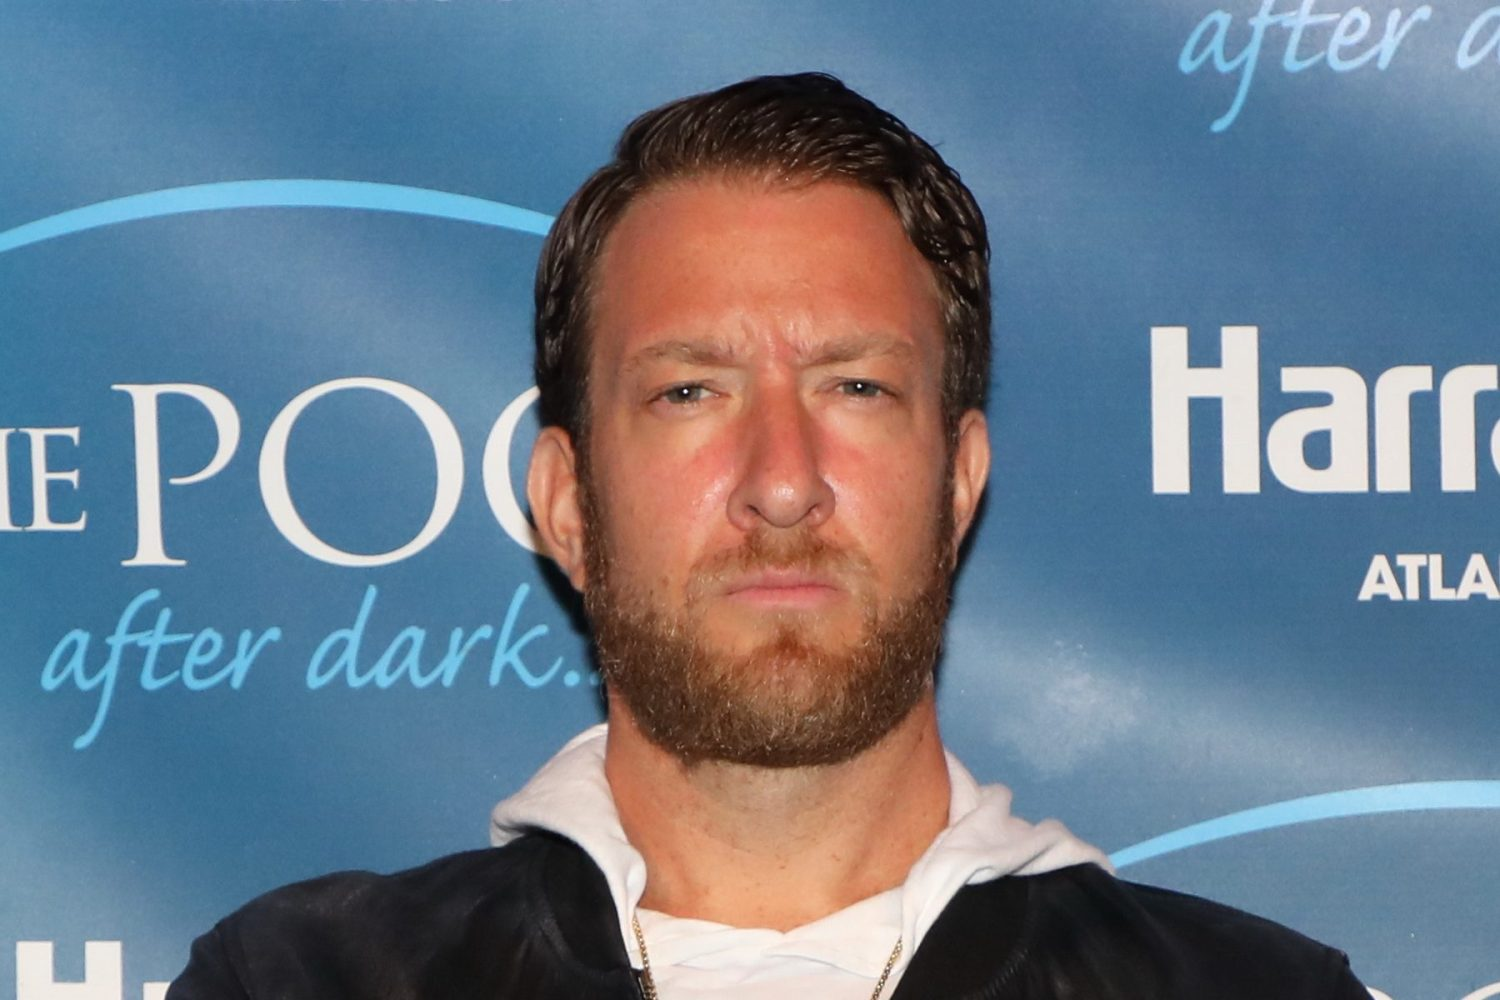 Barstool founder Dave Portnoy looks very tough and not at all like a cokehead version of Arthur the cartoon aardvark